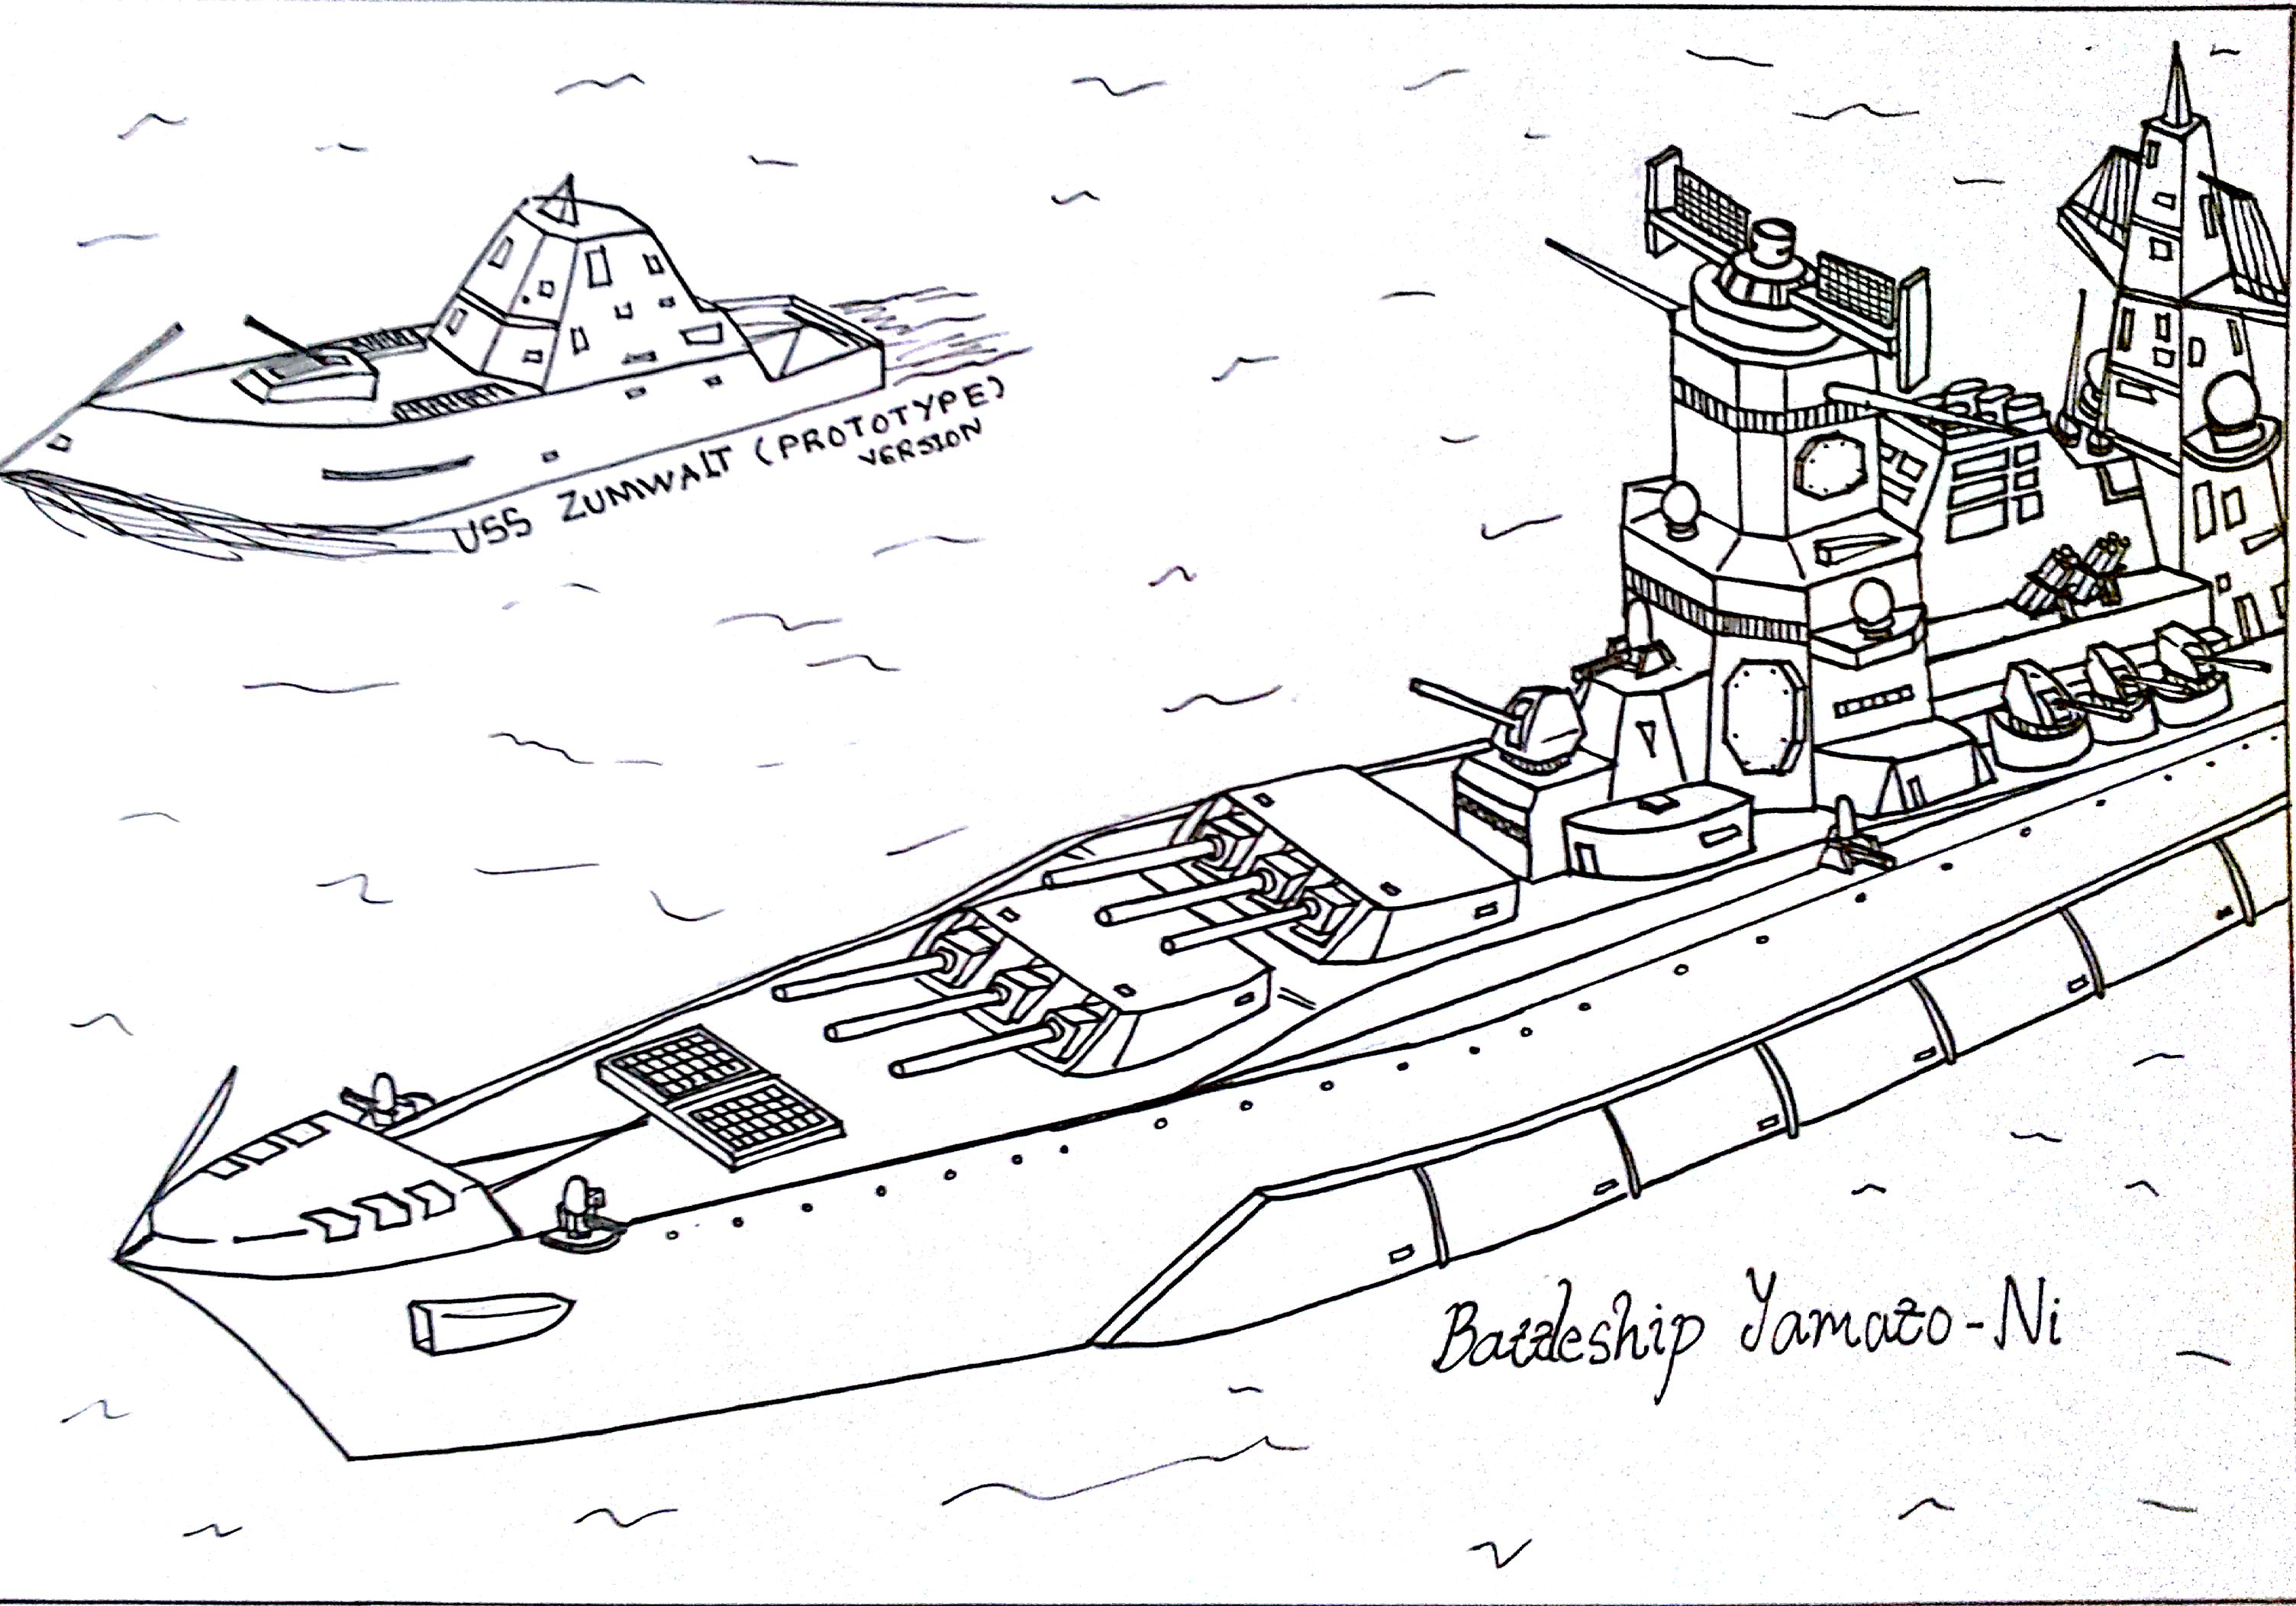 Battleship yamato ni by hummerh3 on deviantart for Battleship coloring pages